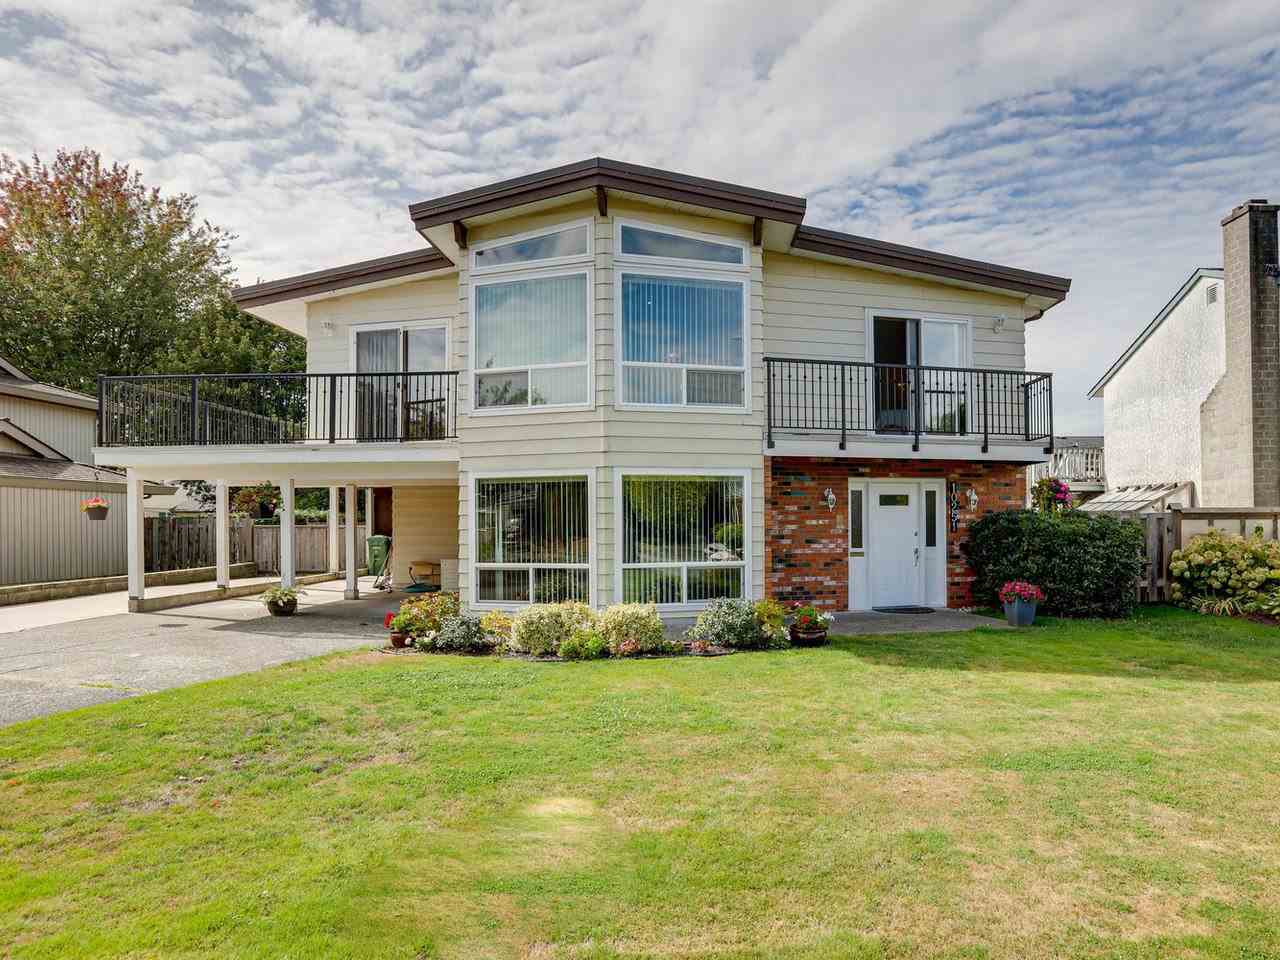 10251 CORNERBROOK CRESCENT - Steveston North House/Single Family for sale, 4 Bedrooms (R2622911)